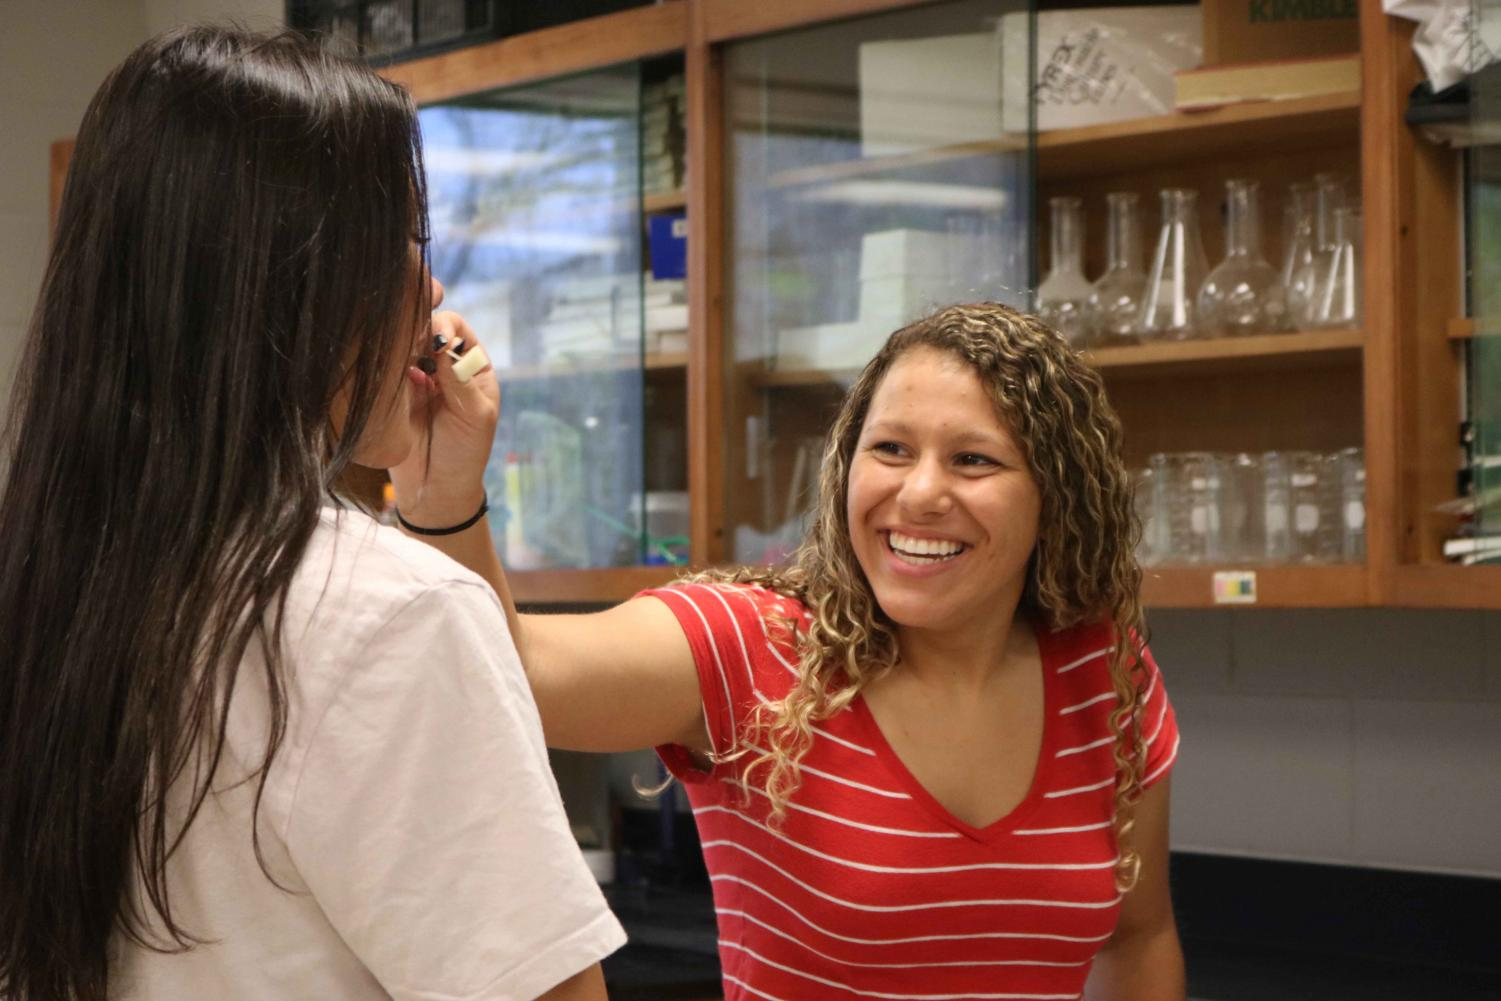 During an anatomy lab, juniors Kirsten Foor and Leaha Brackenridge test their ability to taste different foods without using their sense of smell. The lab had many different stations that were designed to teach students about their sense of smell and taste.